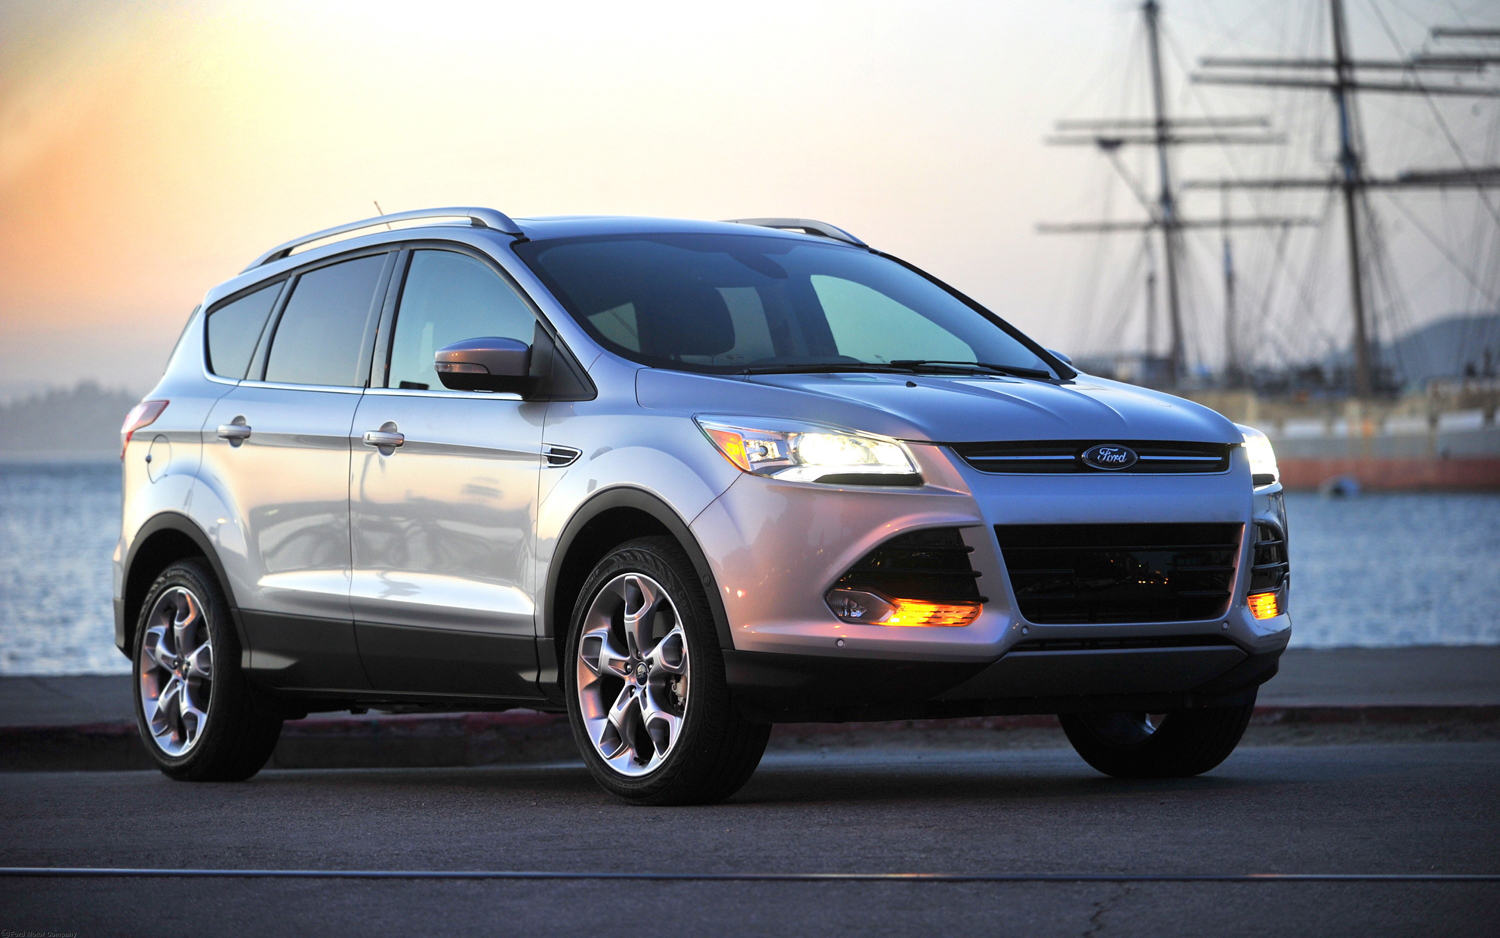 2013 Ford Escape front right view